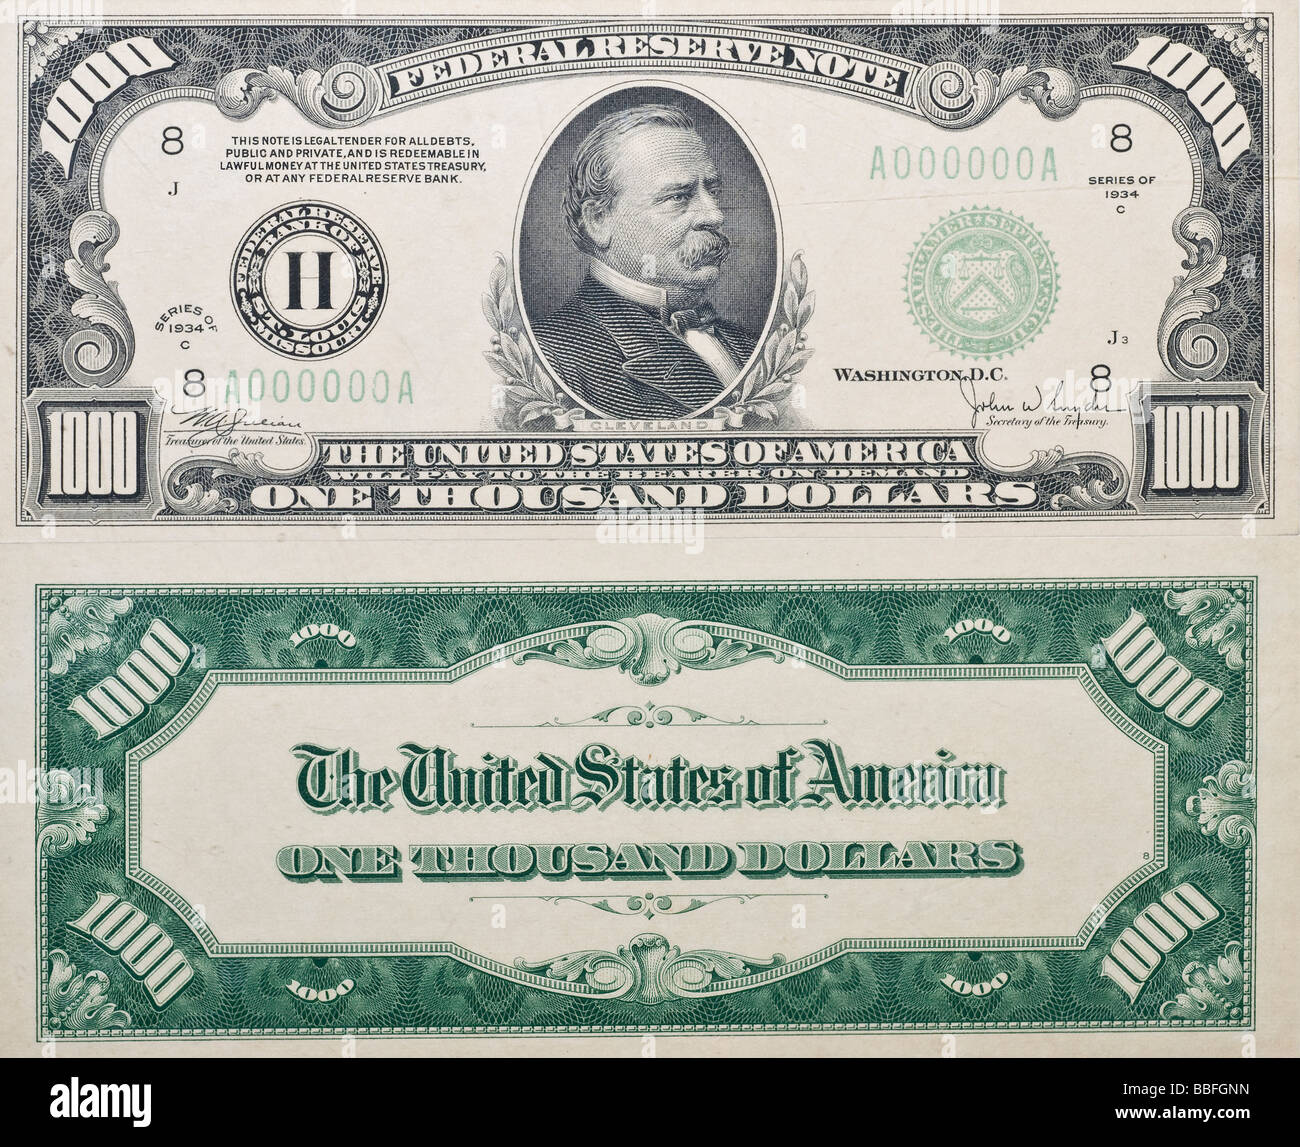 Both sides of a real antique Thousand Dollar Bill from 1934 no longer in circulation shows grover cleveland on front - Stock Image